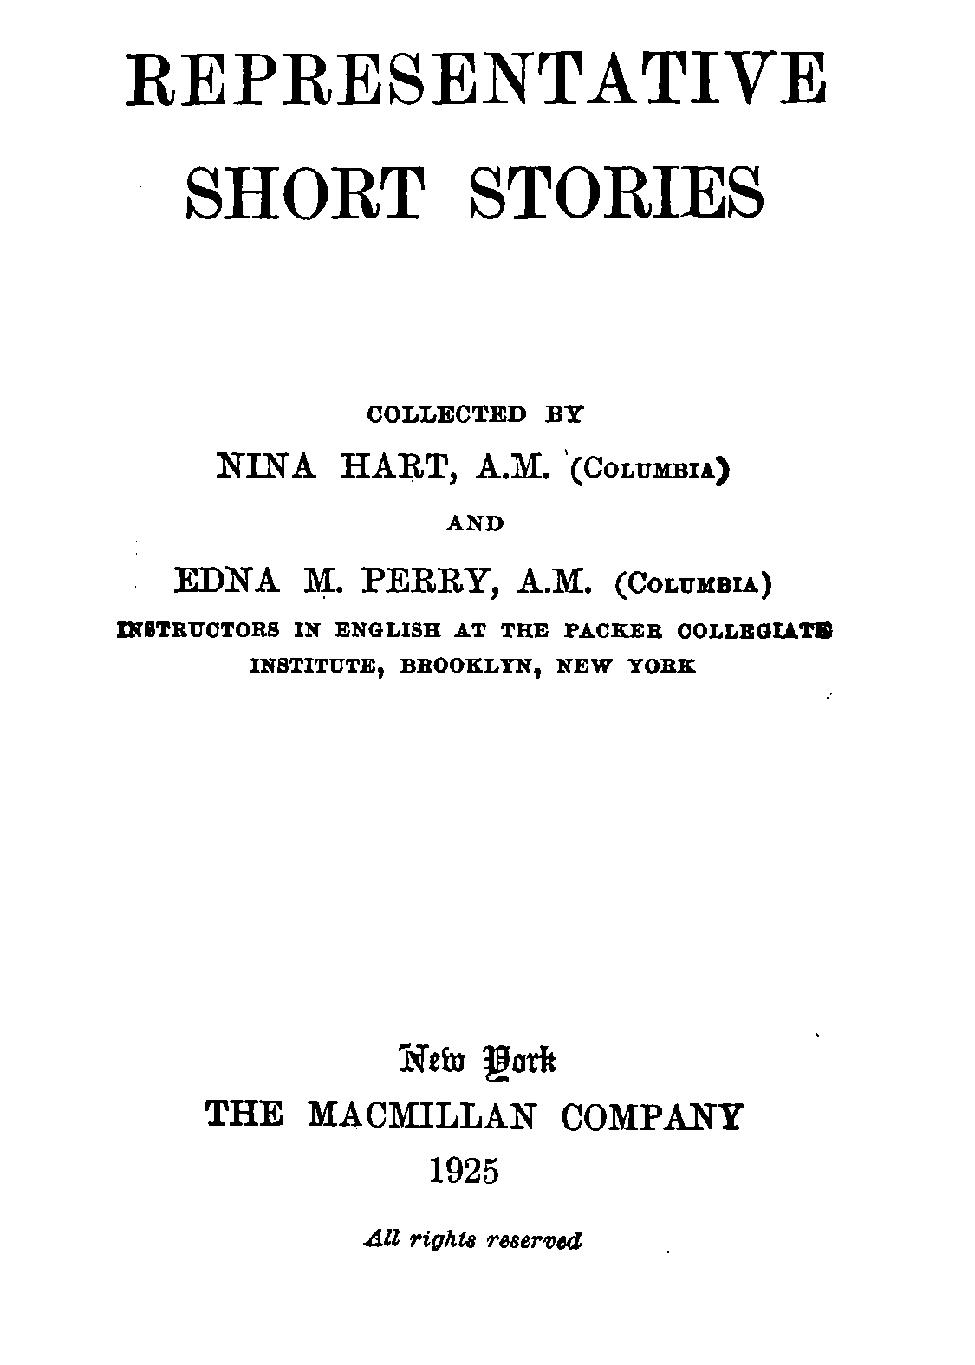 Representative Short Stories Collected By Nina Hart And Edna Perry